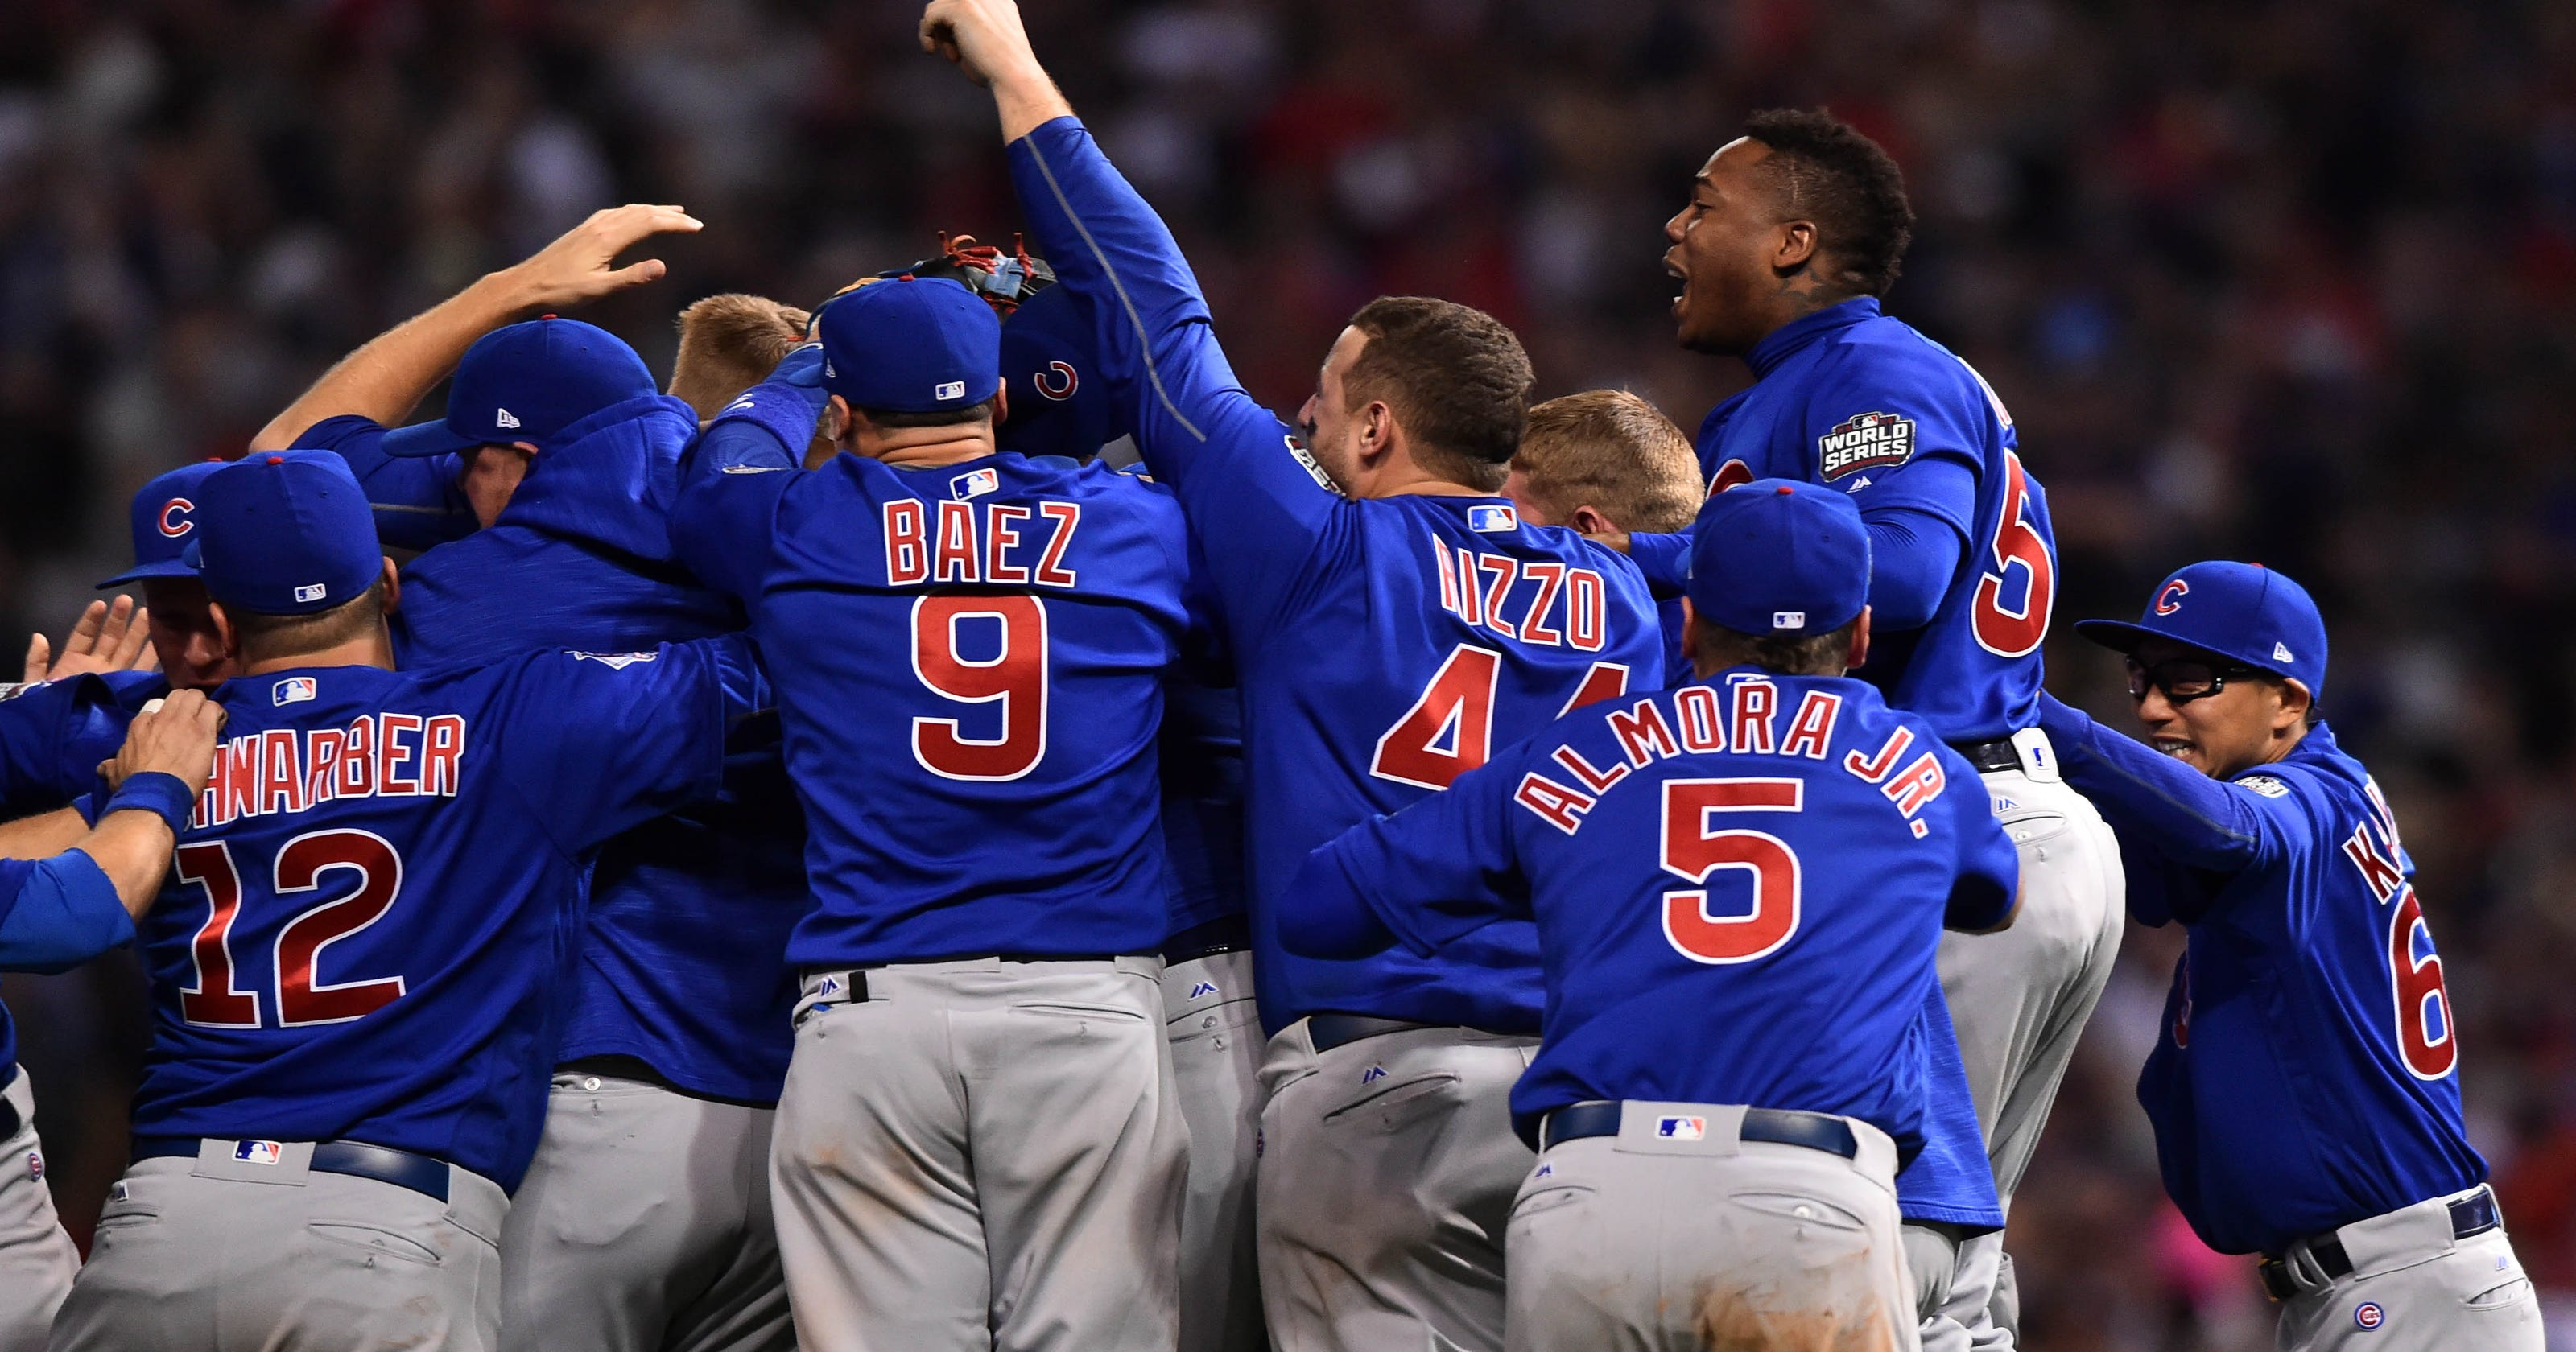 d021dcd71 Reign men  Cubs  killed the curse  with epic Game 7 victory in World Series